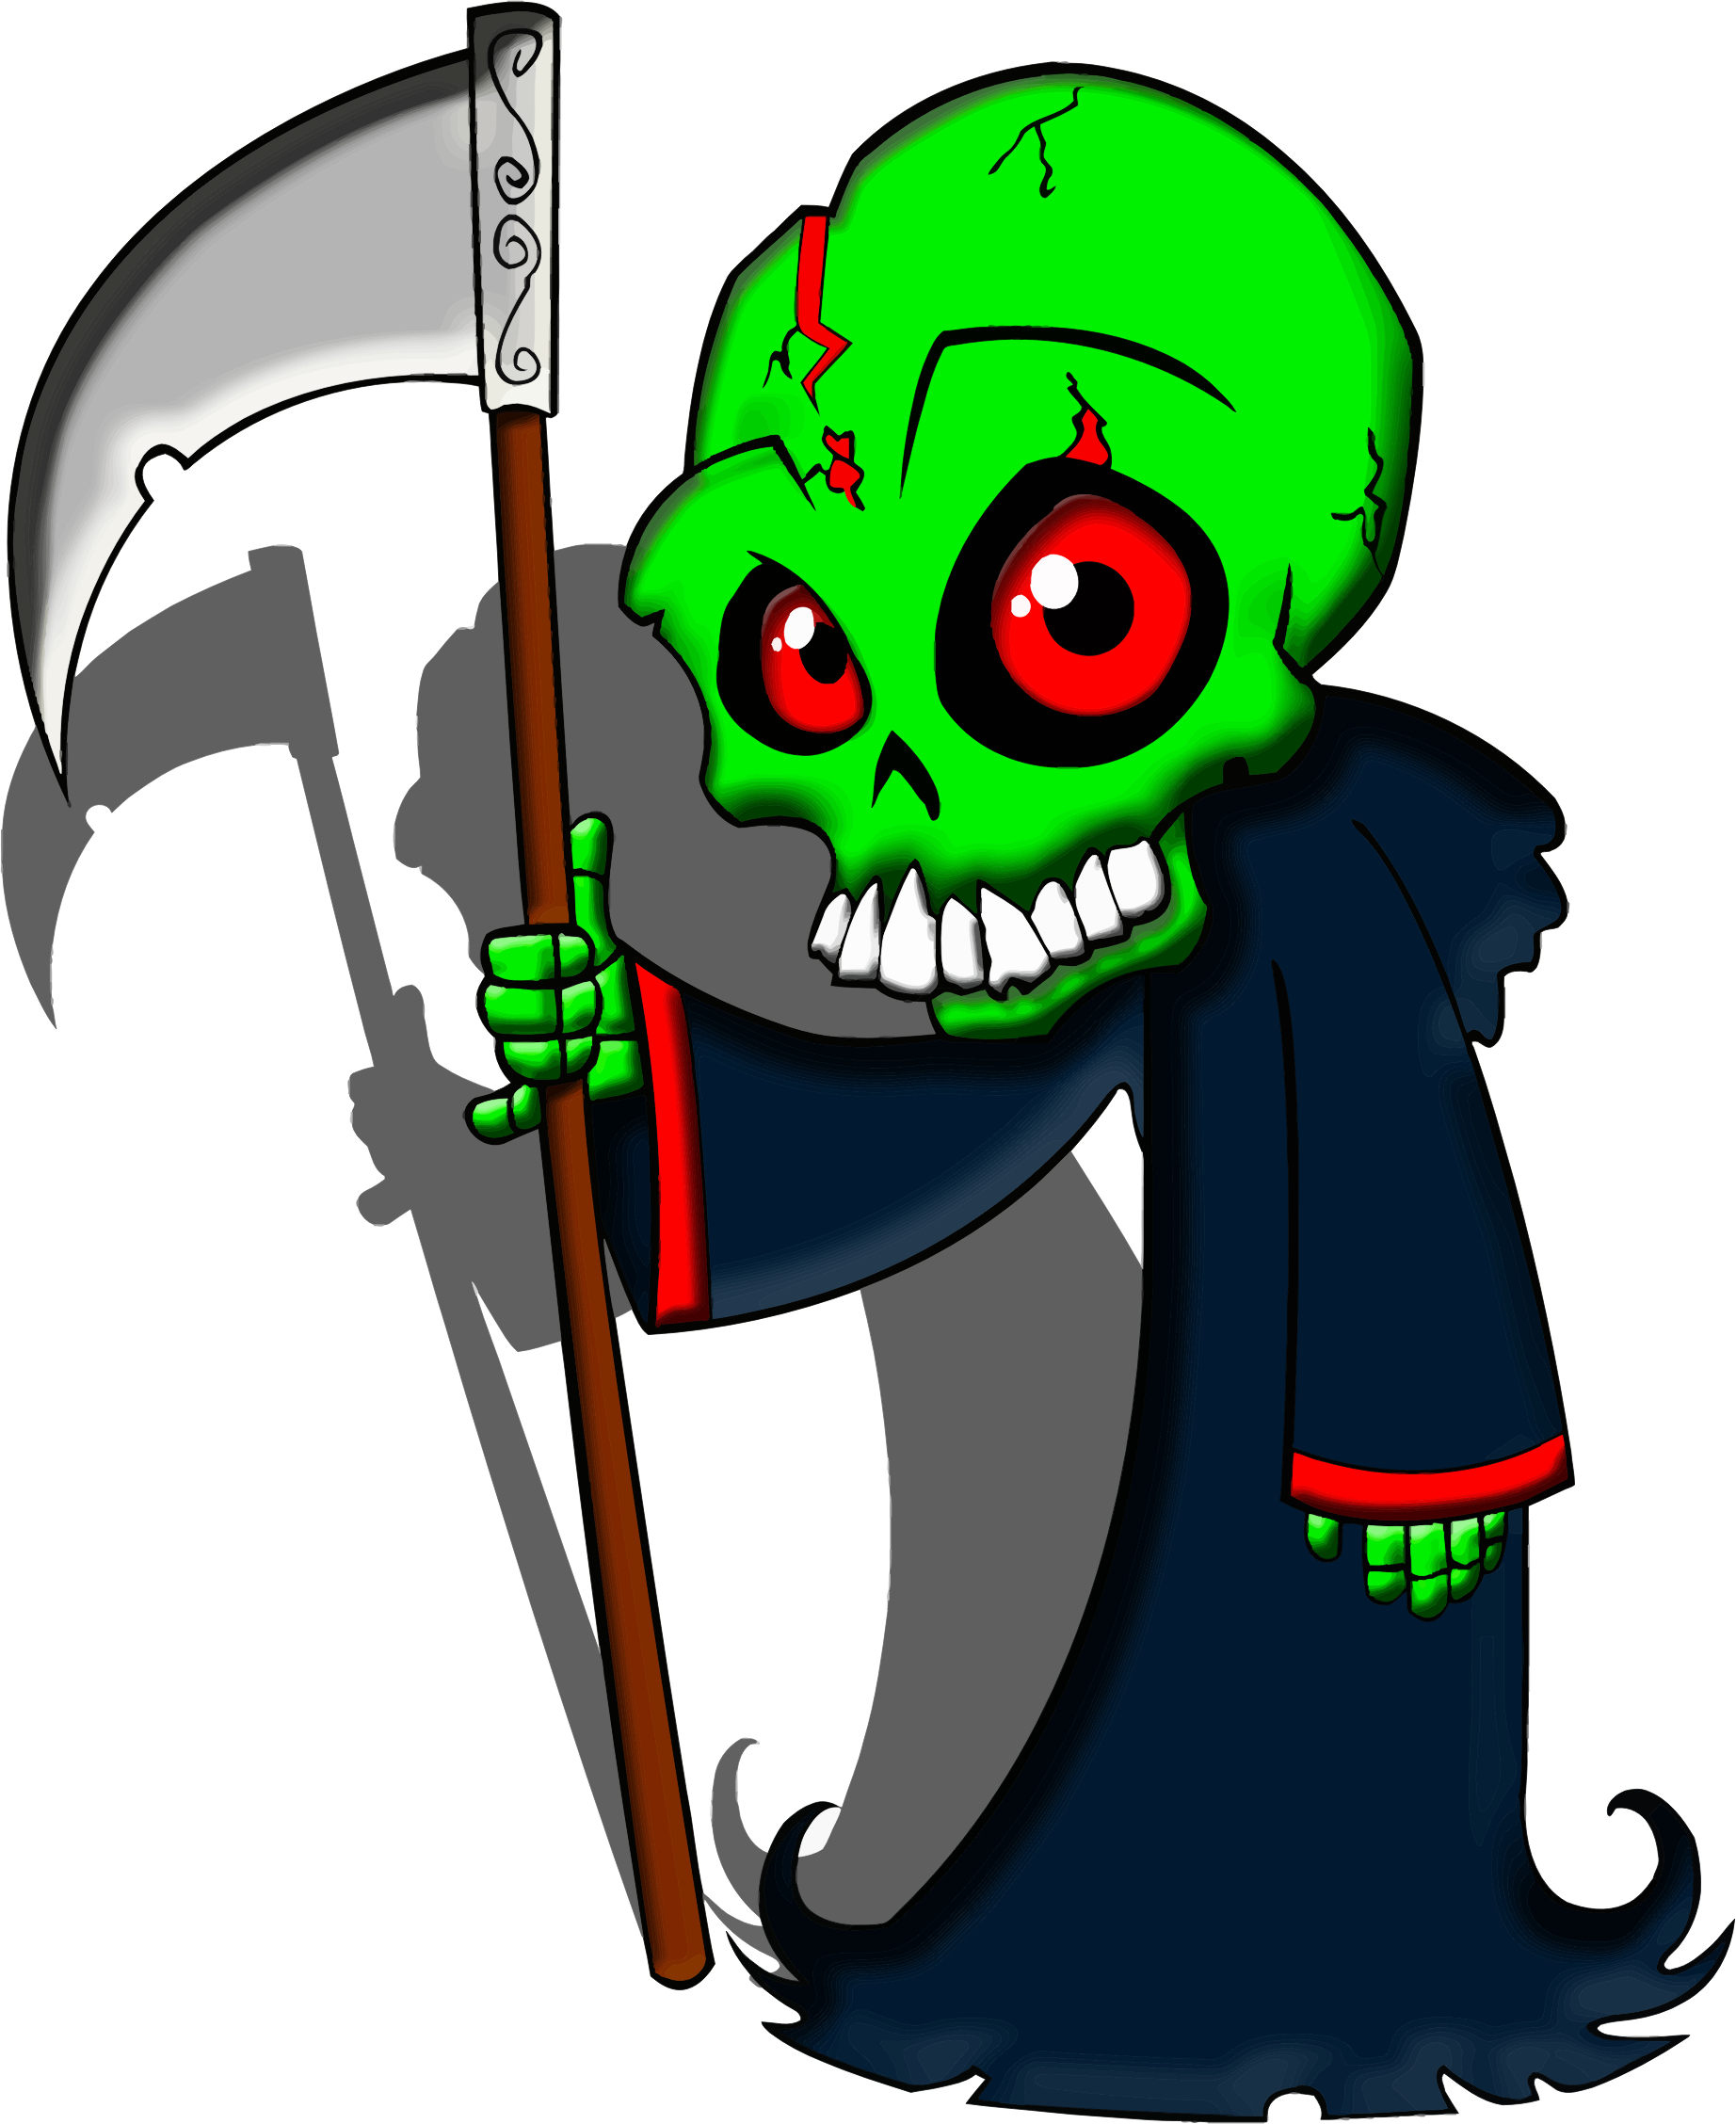 svg royalty free library Grim reaper clipart grm. Free on dumielauxepices net